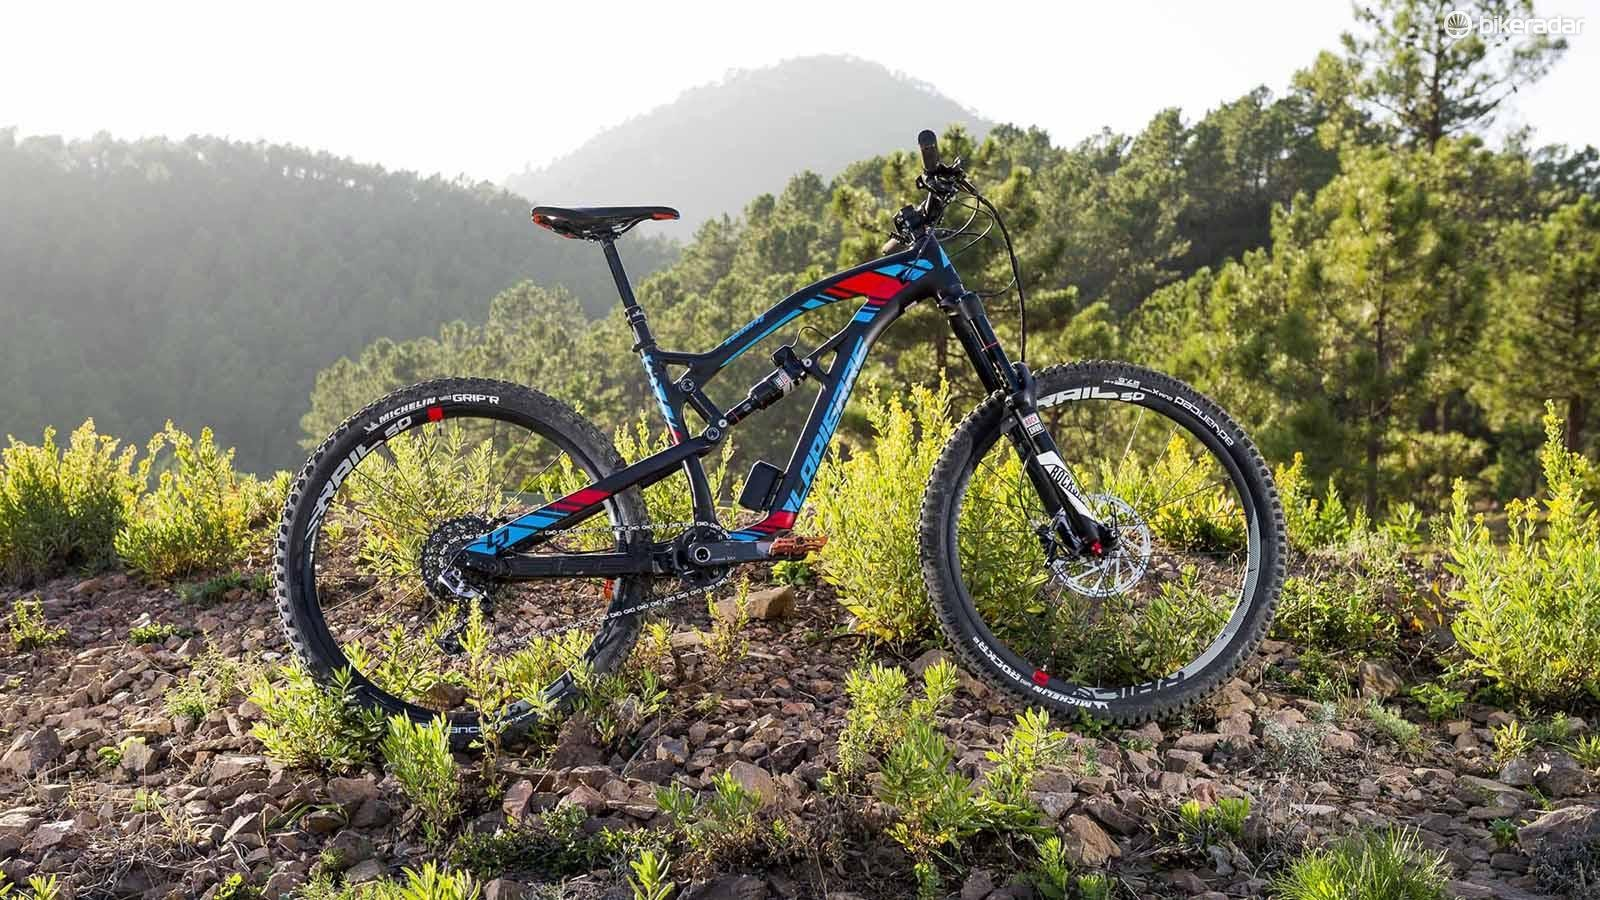 The 2016 Lapierre Spicy Team is an all-new design designed with a racing focus